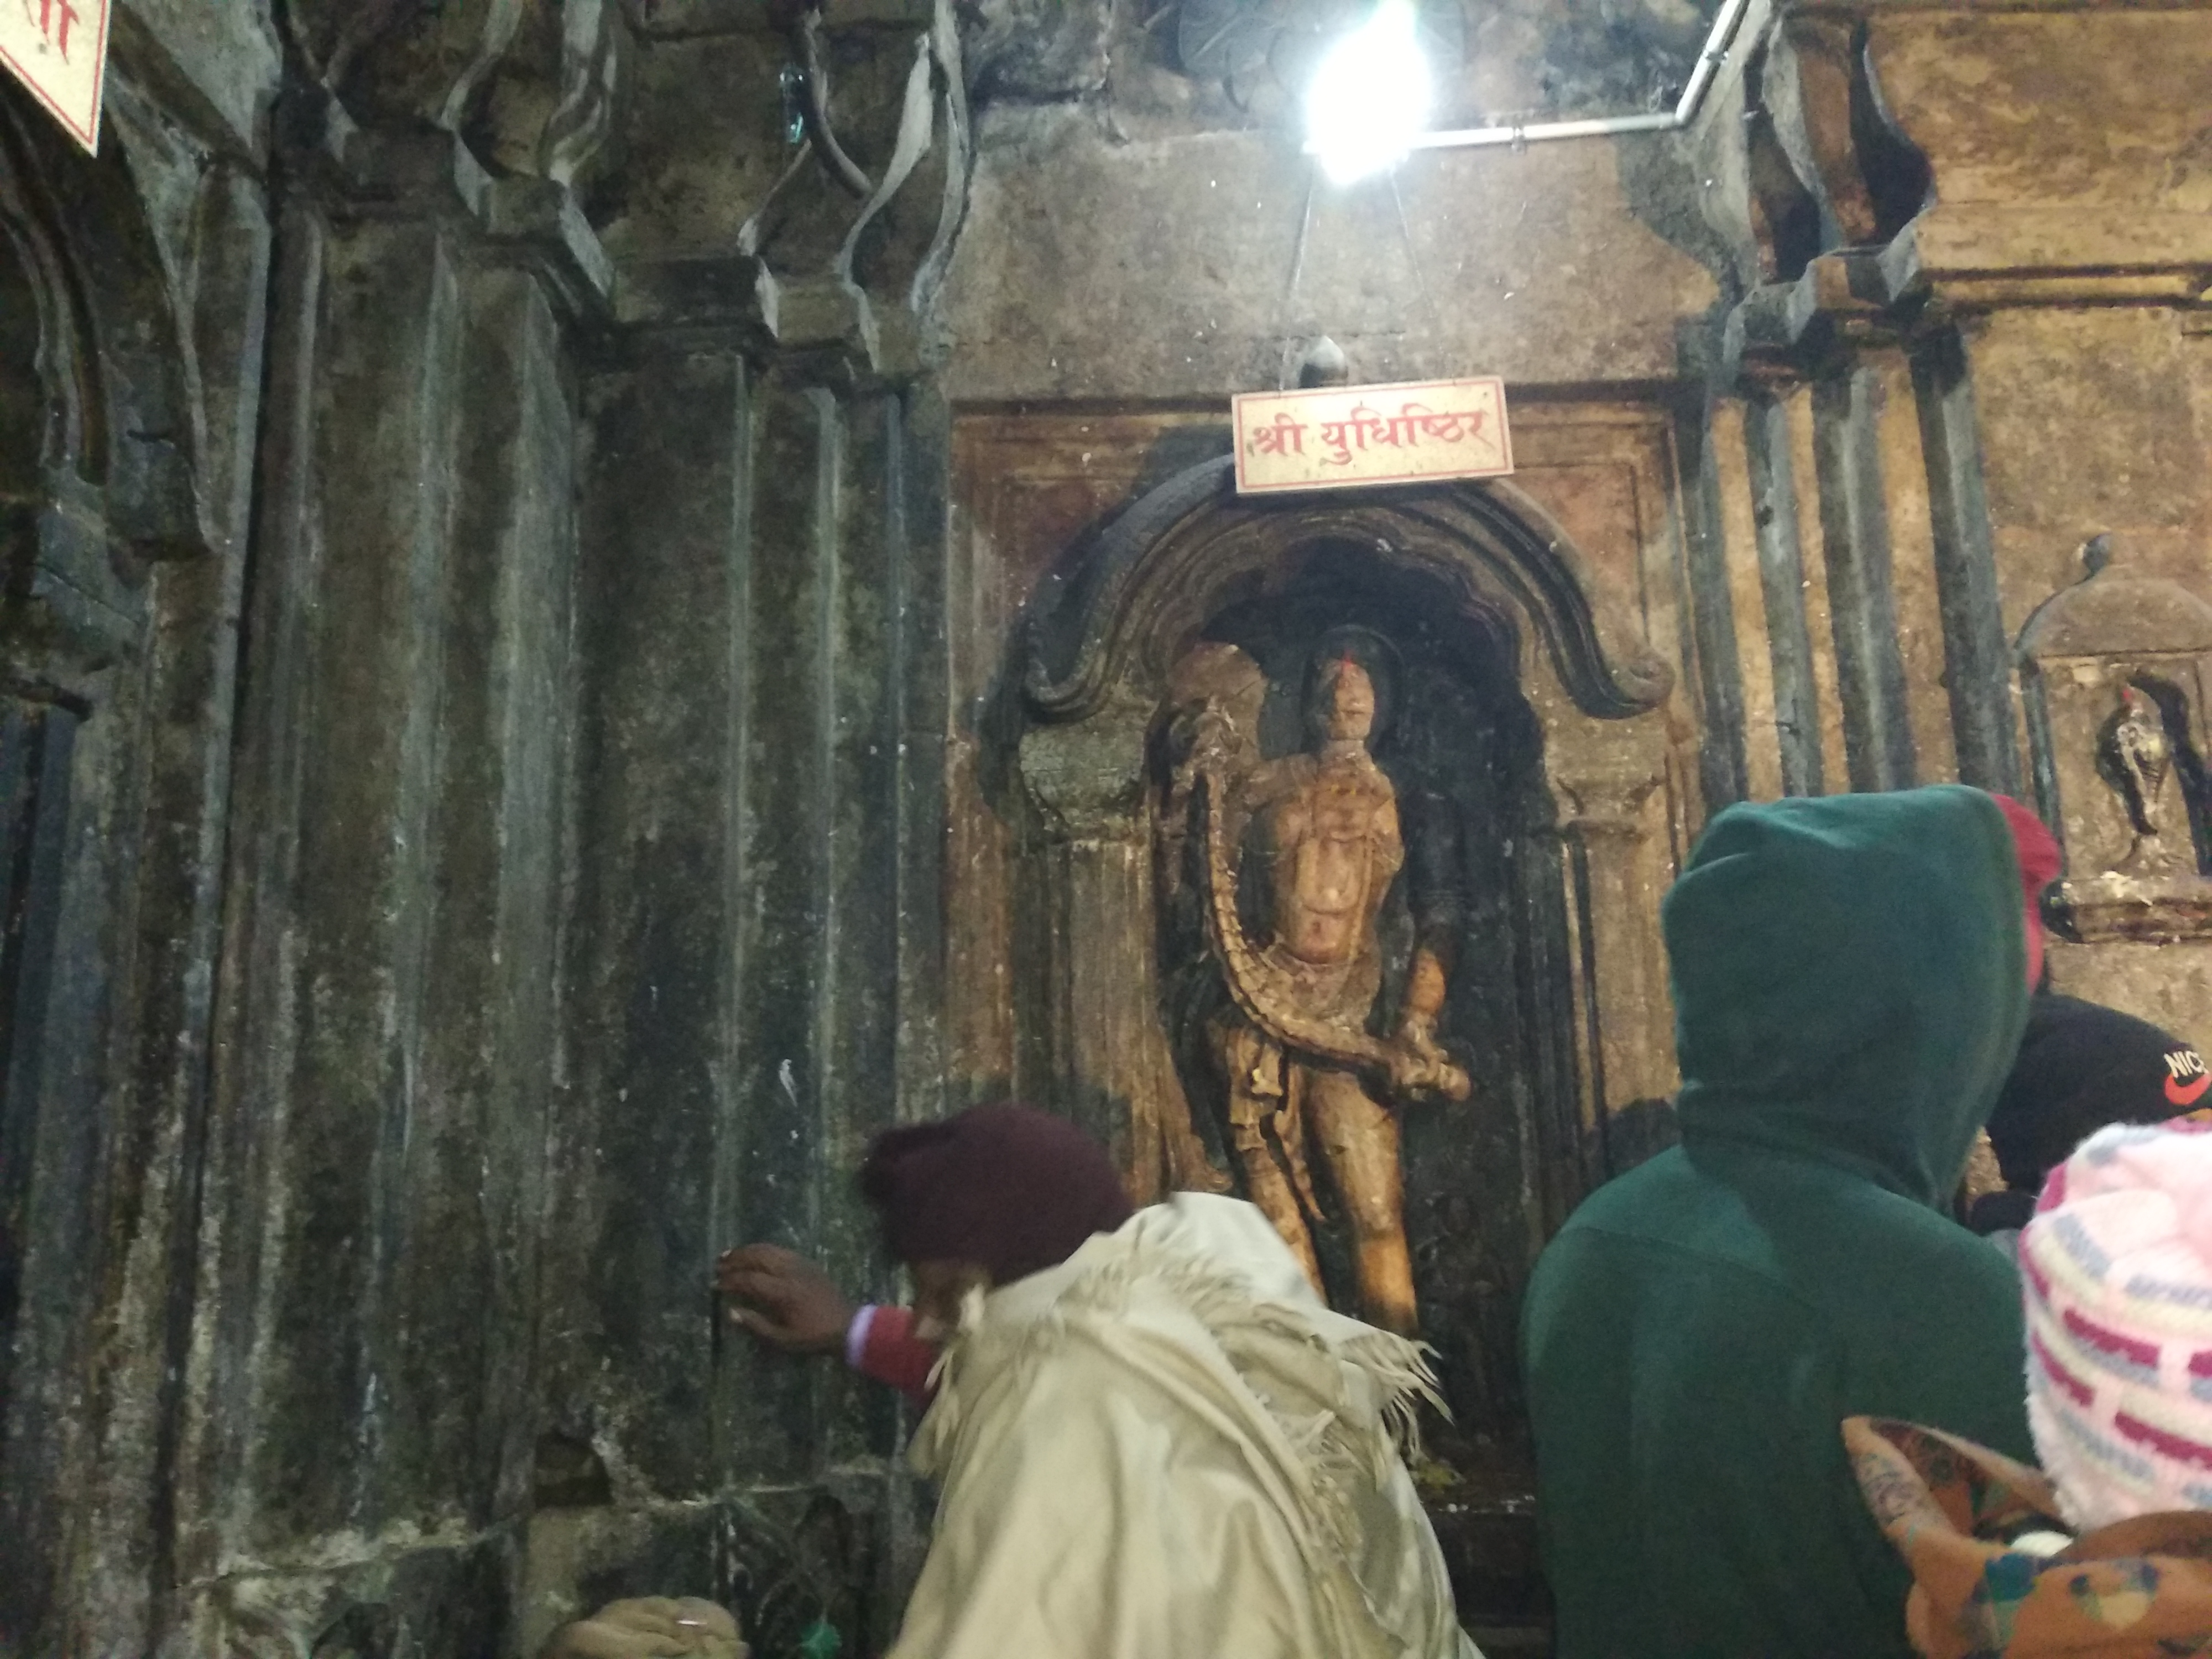 Visit to Kedarnath temple in morning and trekking in rain while coming